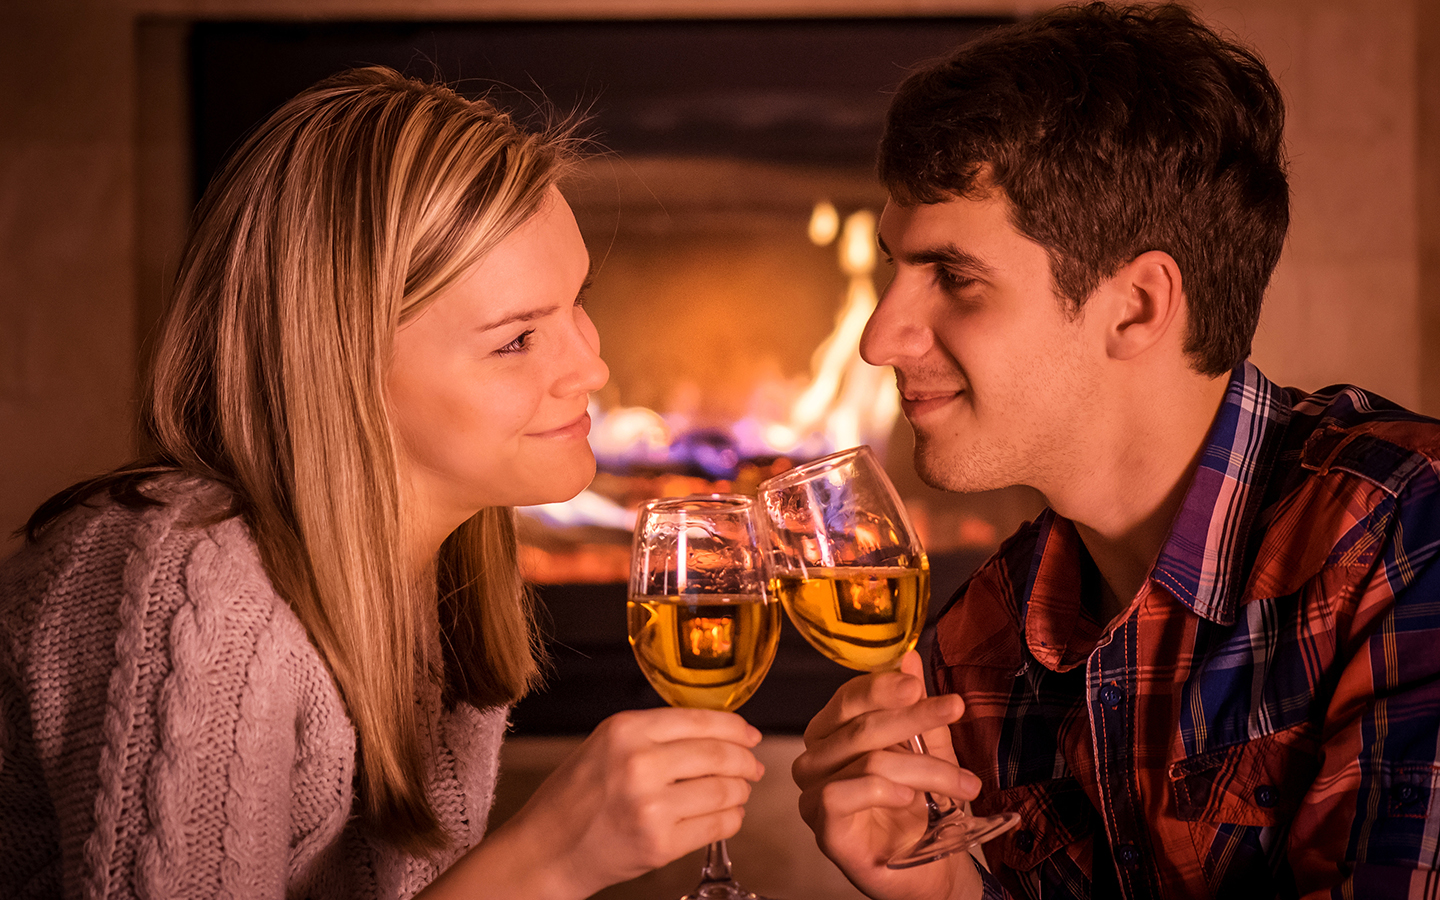 Woman and man clink wine glasses in front of fireplace